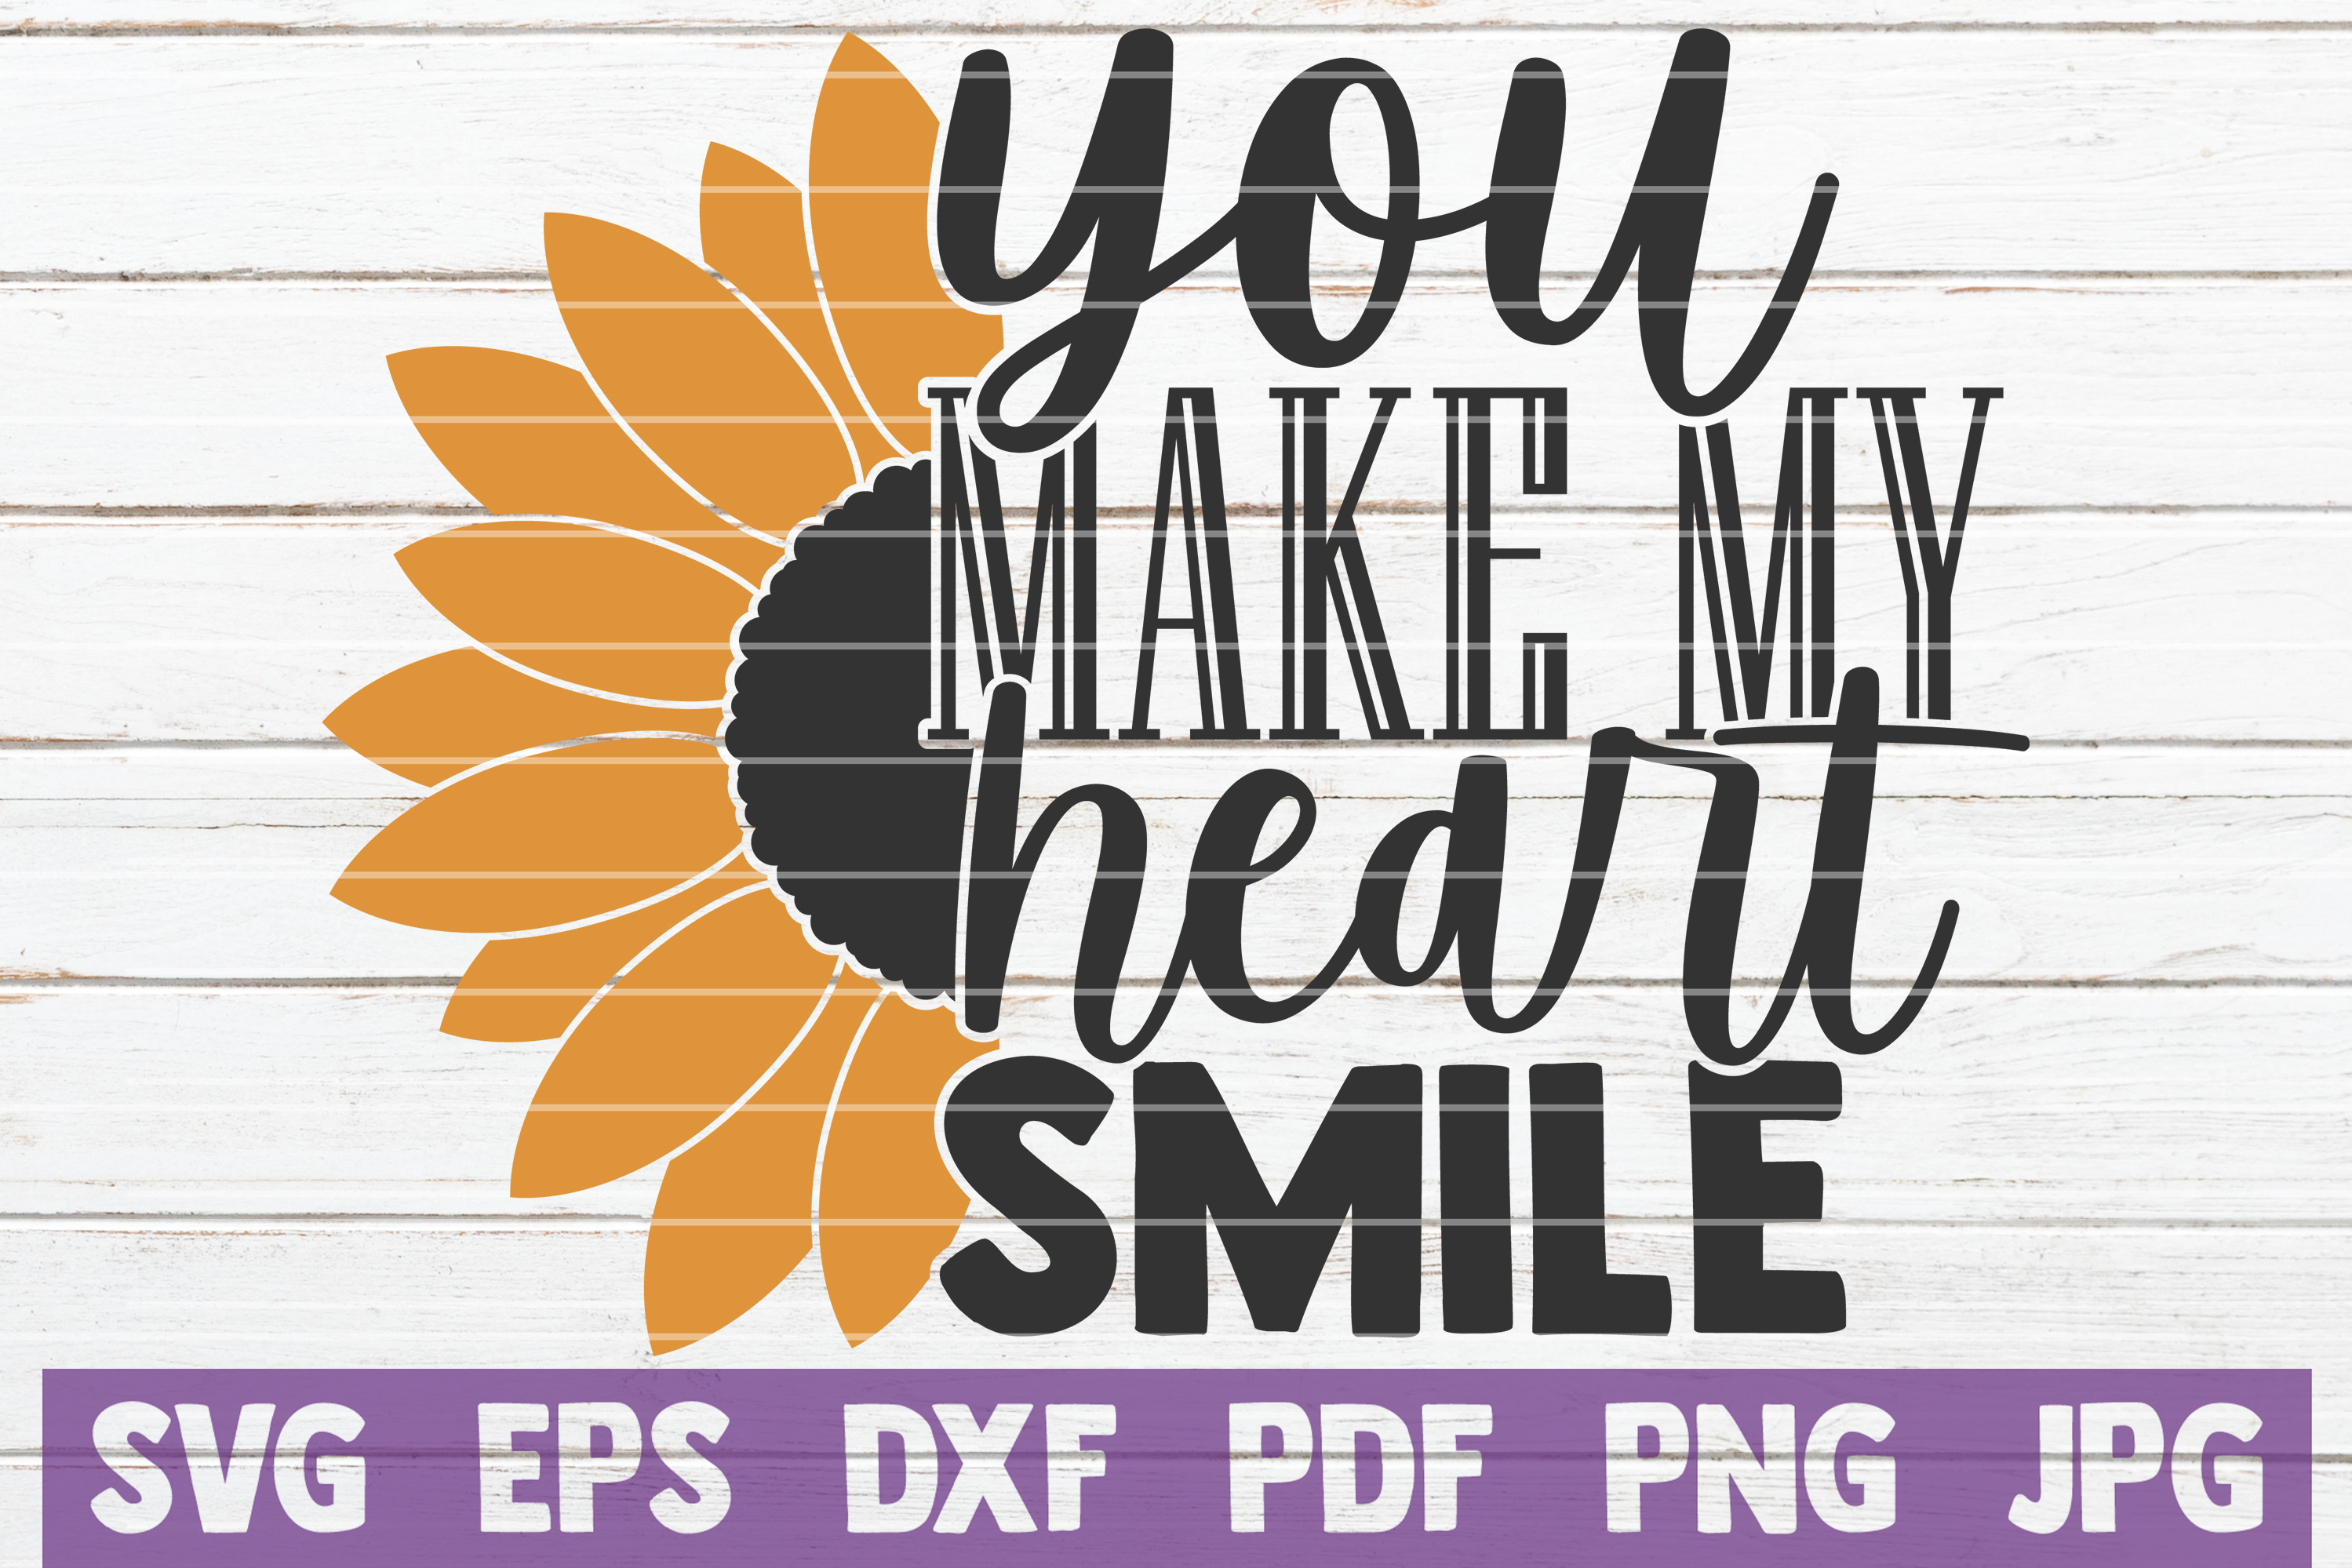 Download Free You Make My Heart Smile Graphic By Mintymarshmallows Creative for Cricut Explore, Silhouette and other cutting machines.